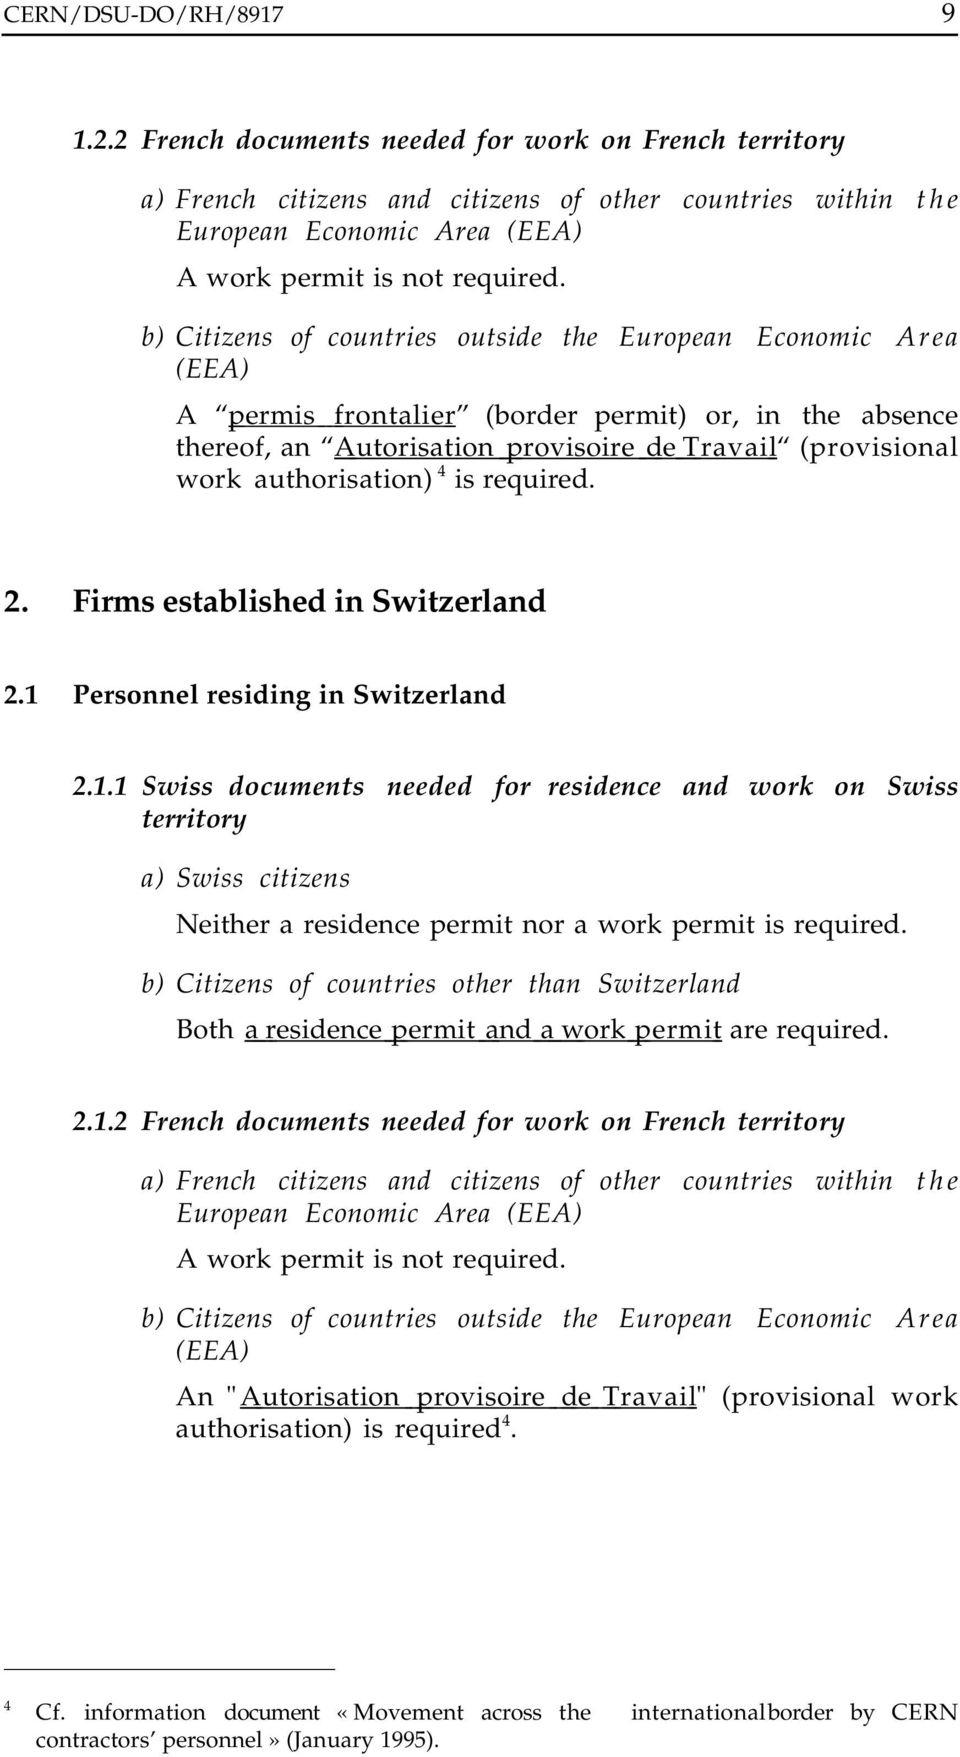 required. 2. Firms established in Switzerland 2.1 Personnel residing in Switzerland 2.1.1 Swiss documents needed for residence and work on Swiss territory a) Swiss citizens Neither a residence nor a work is required.